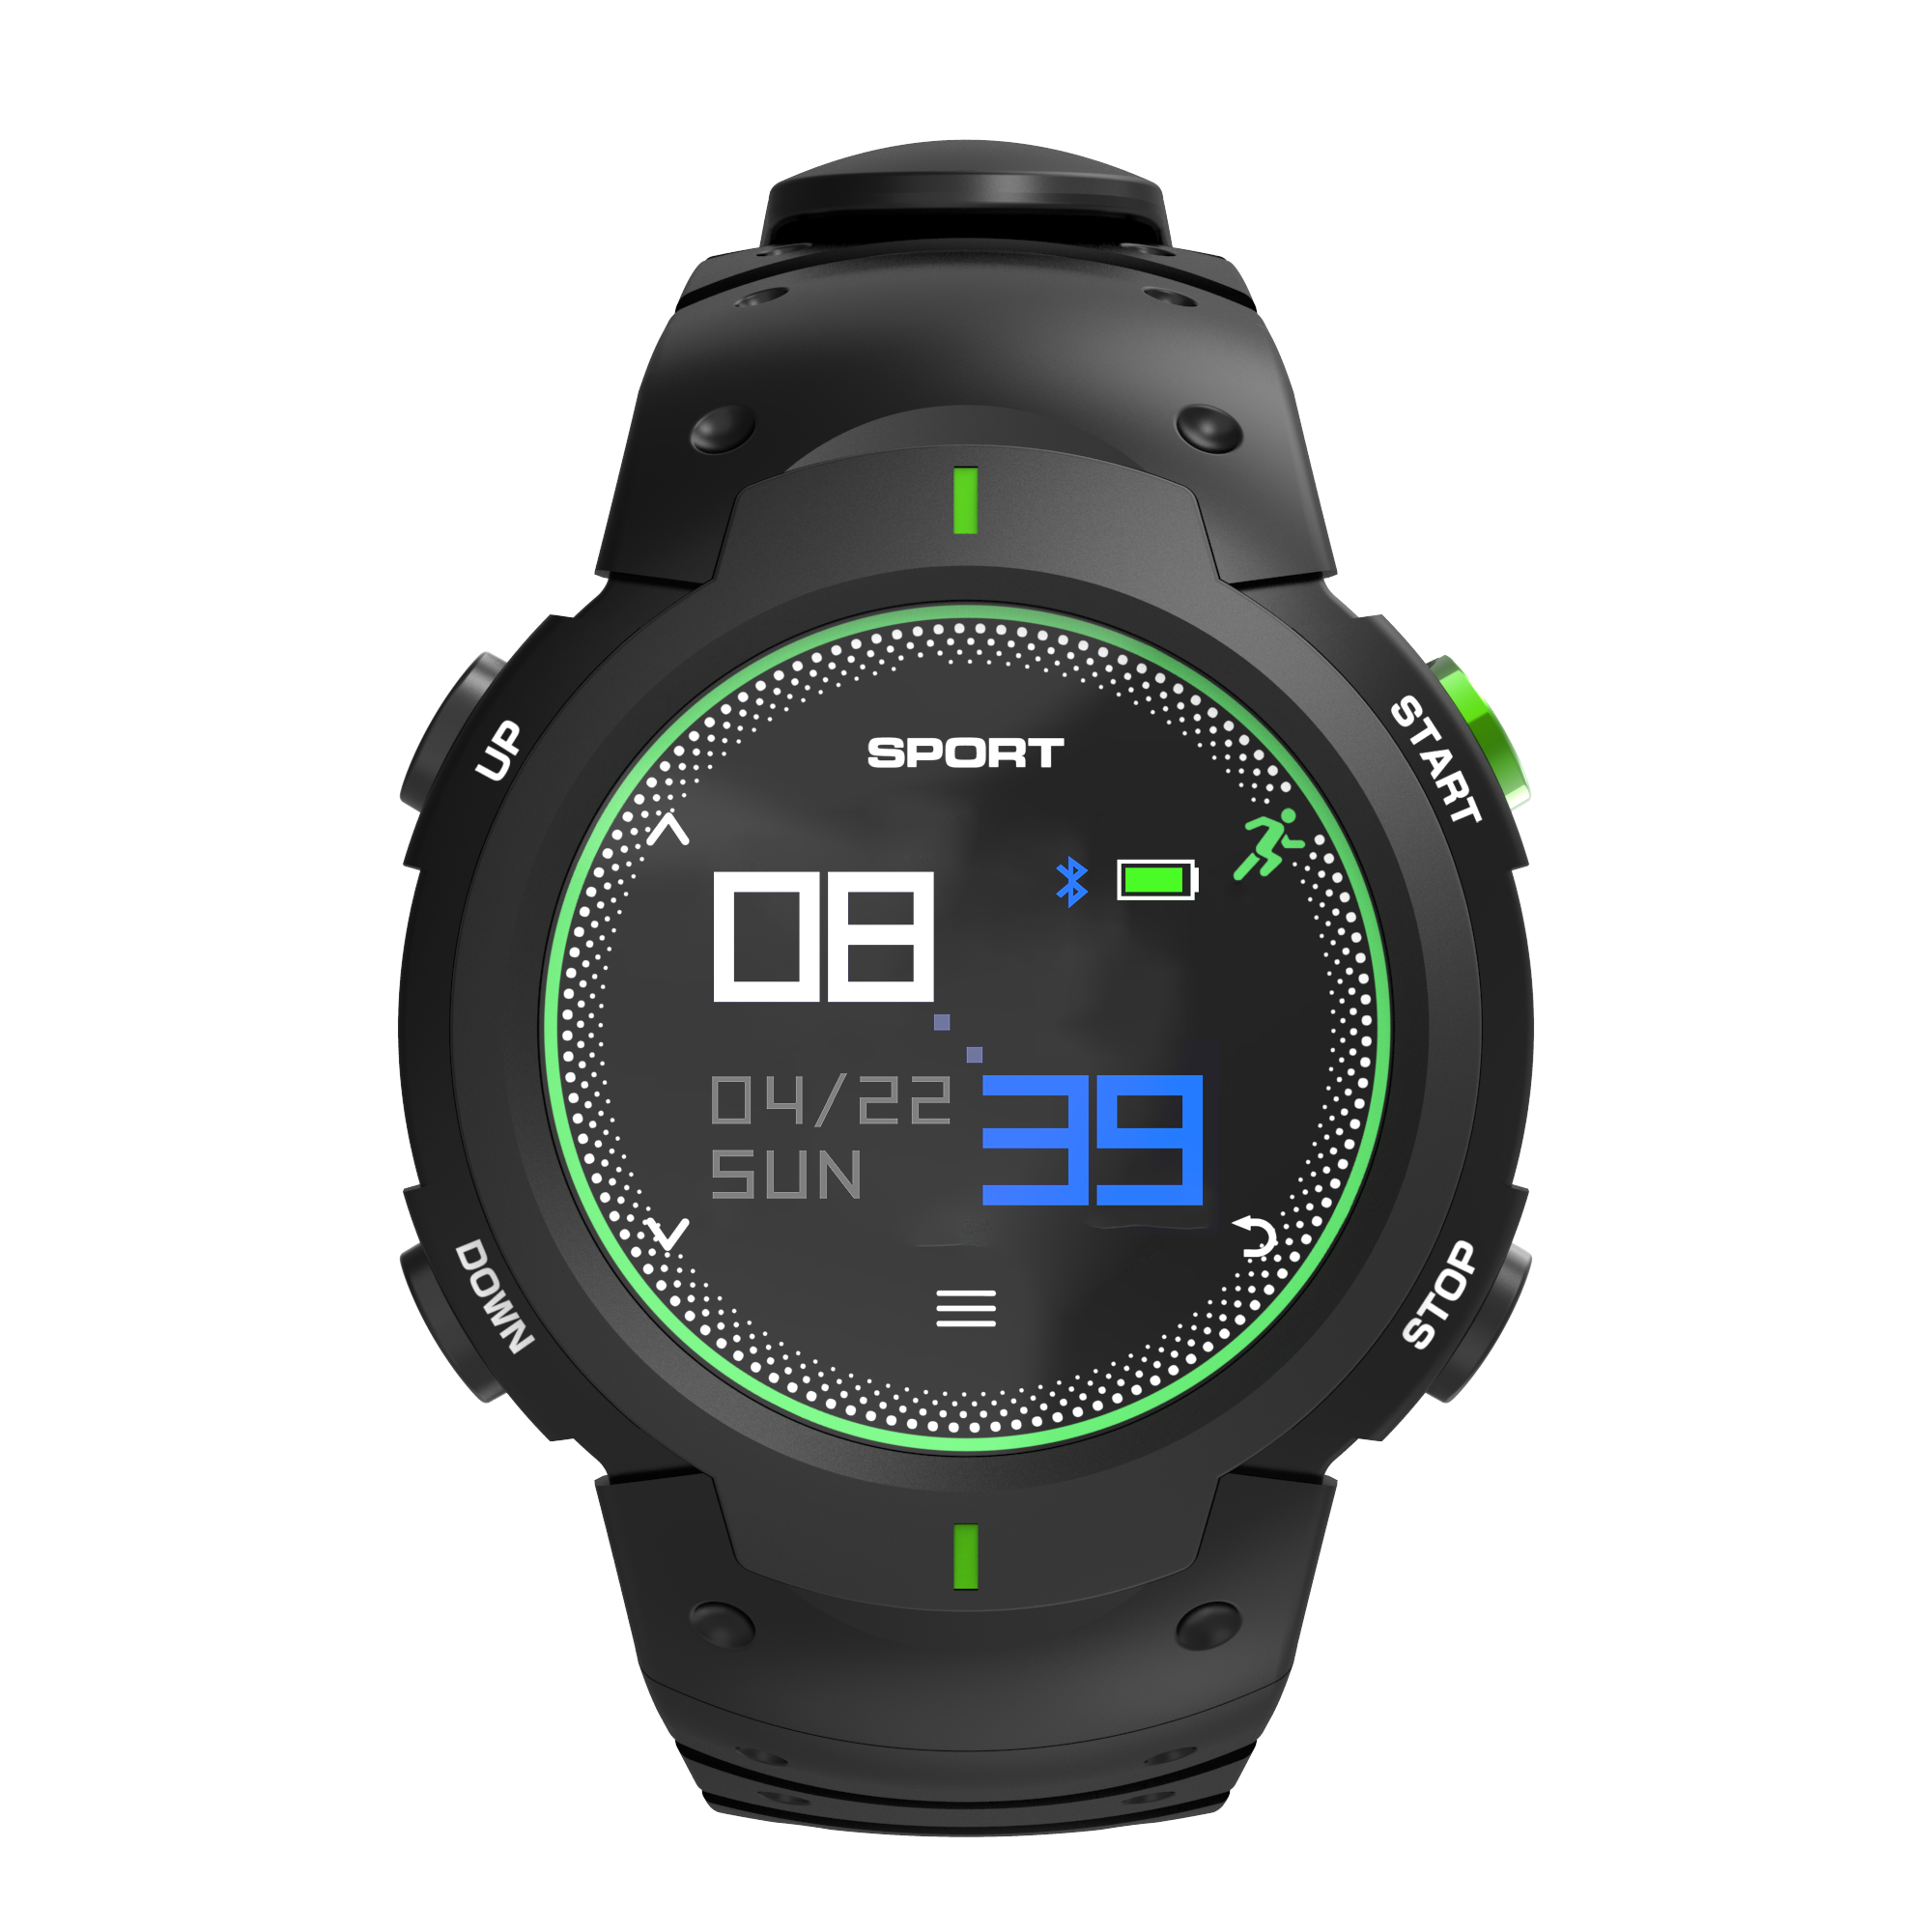 The high quality sports fitness smart watch GPS smartwatch with big battery for android and iOS